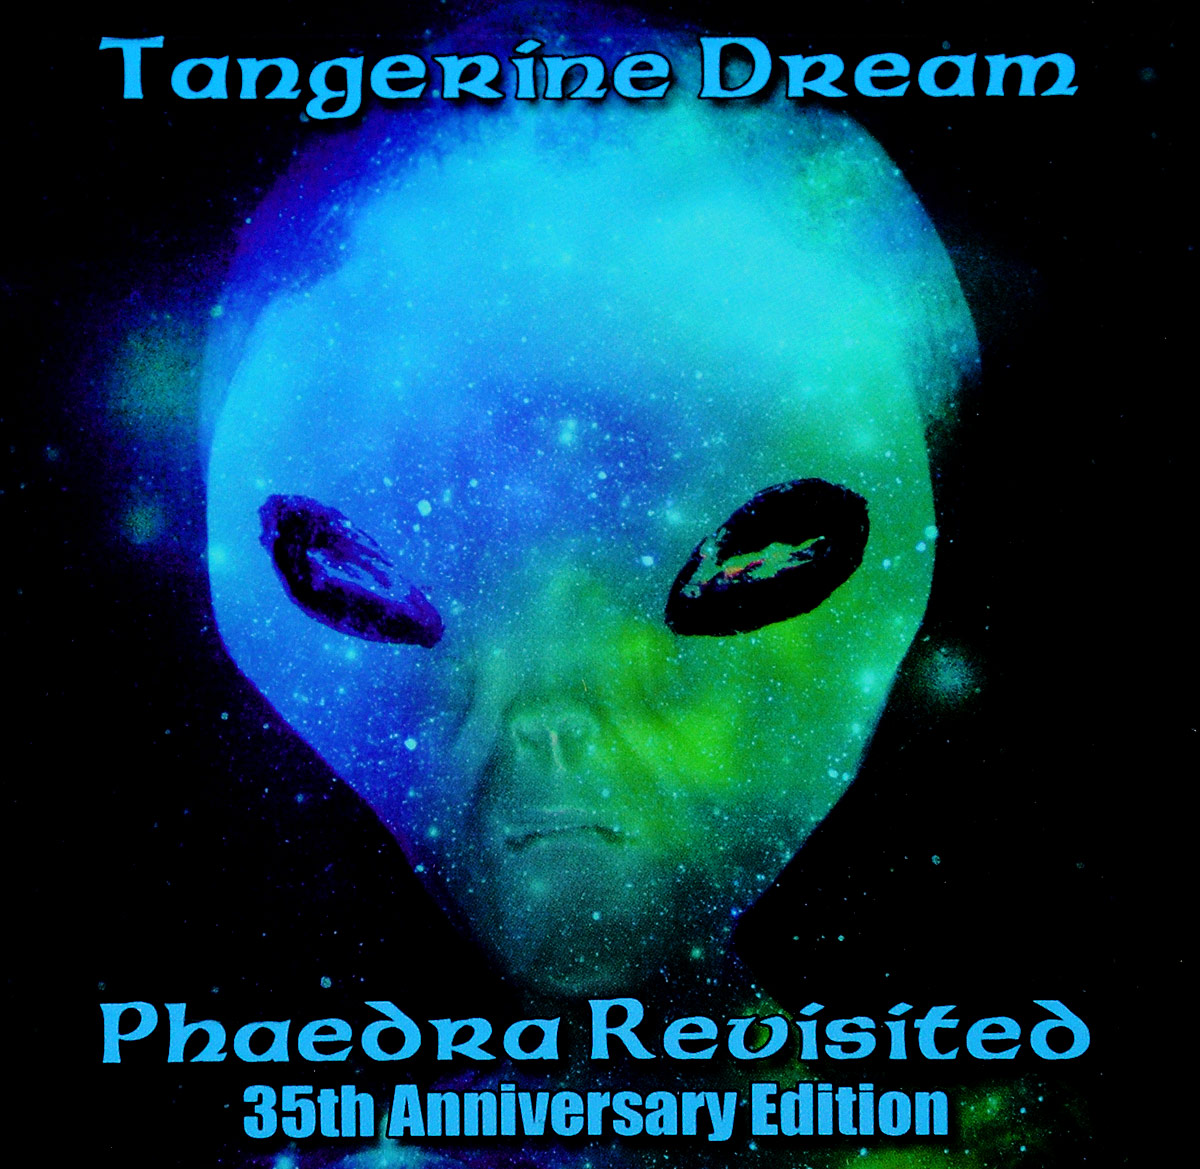 Tangerine Dream. Phaedra Revisited - 35th Anniversary Edition